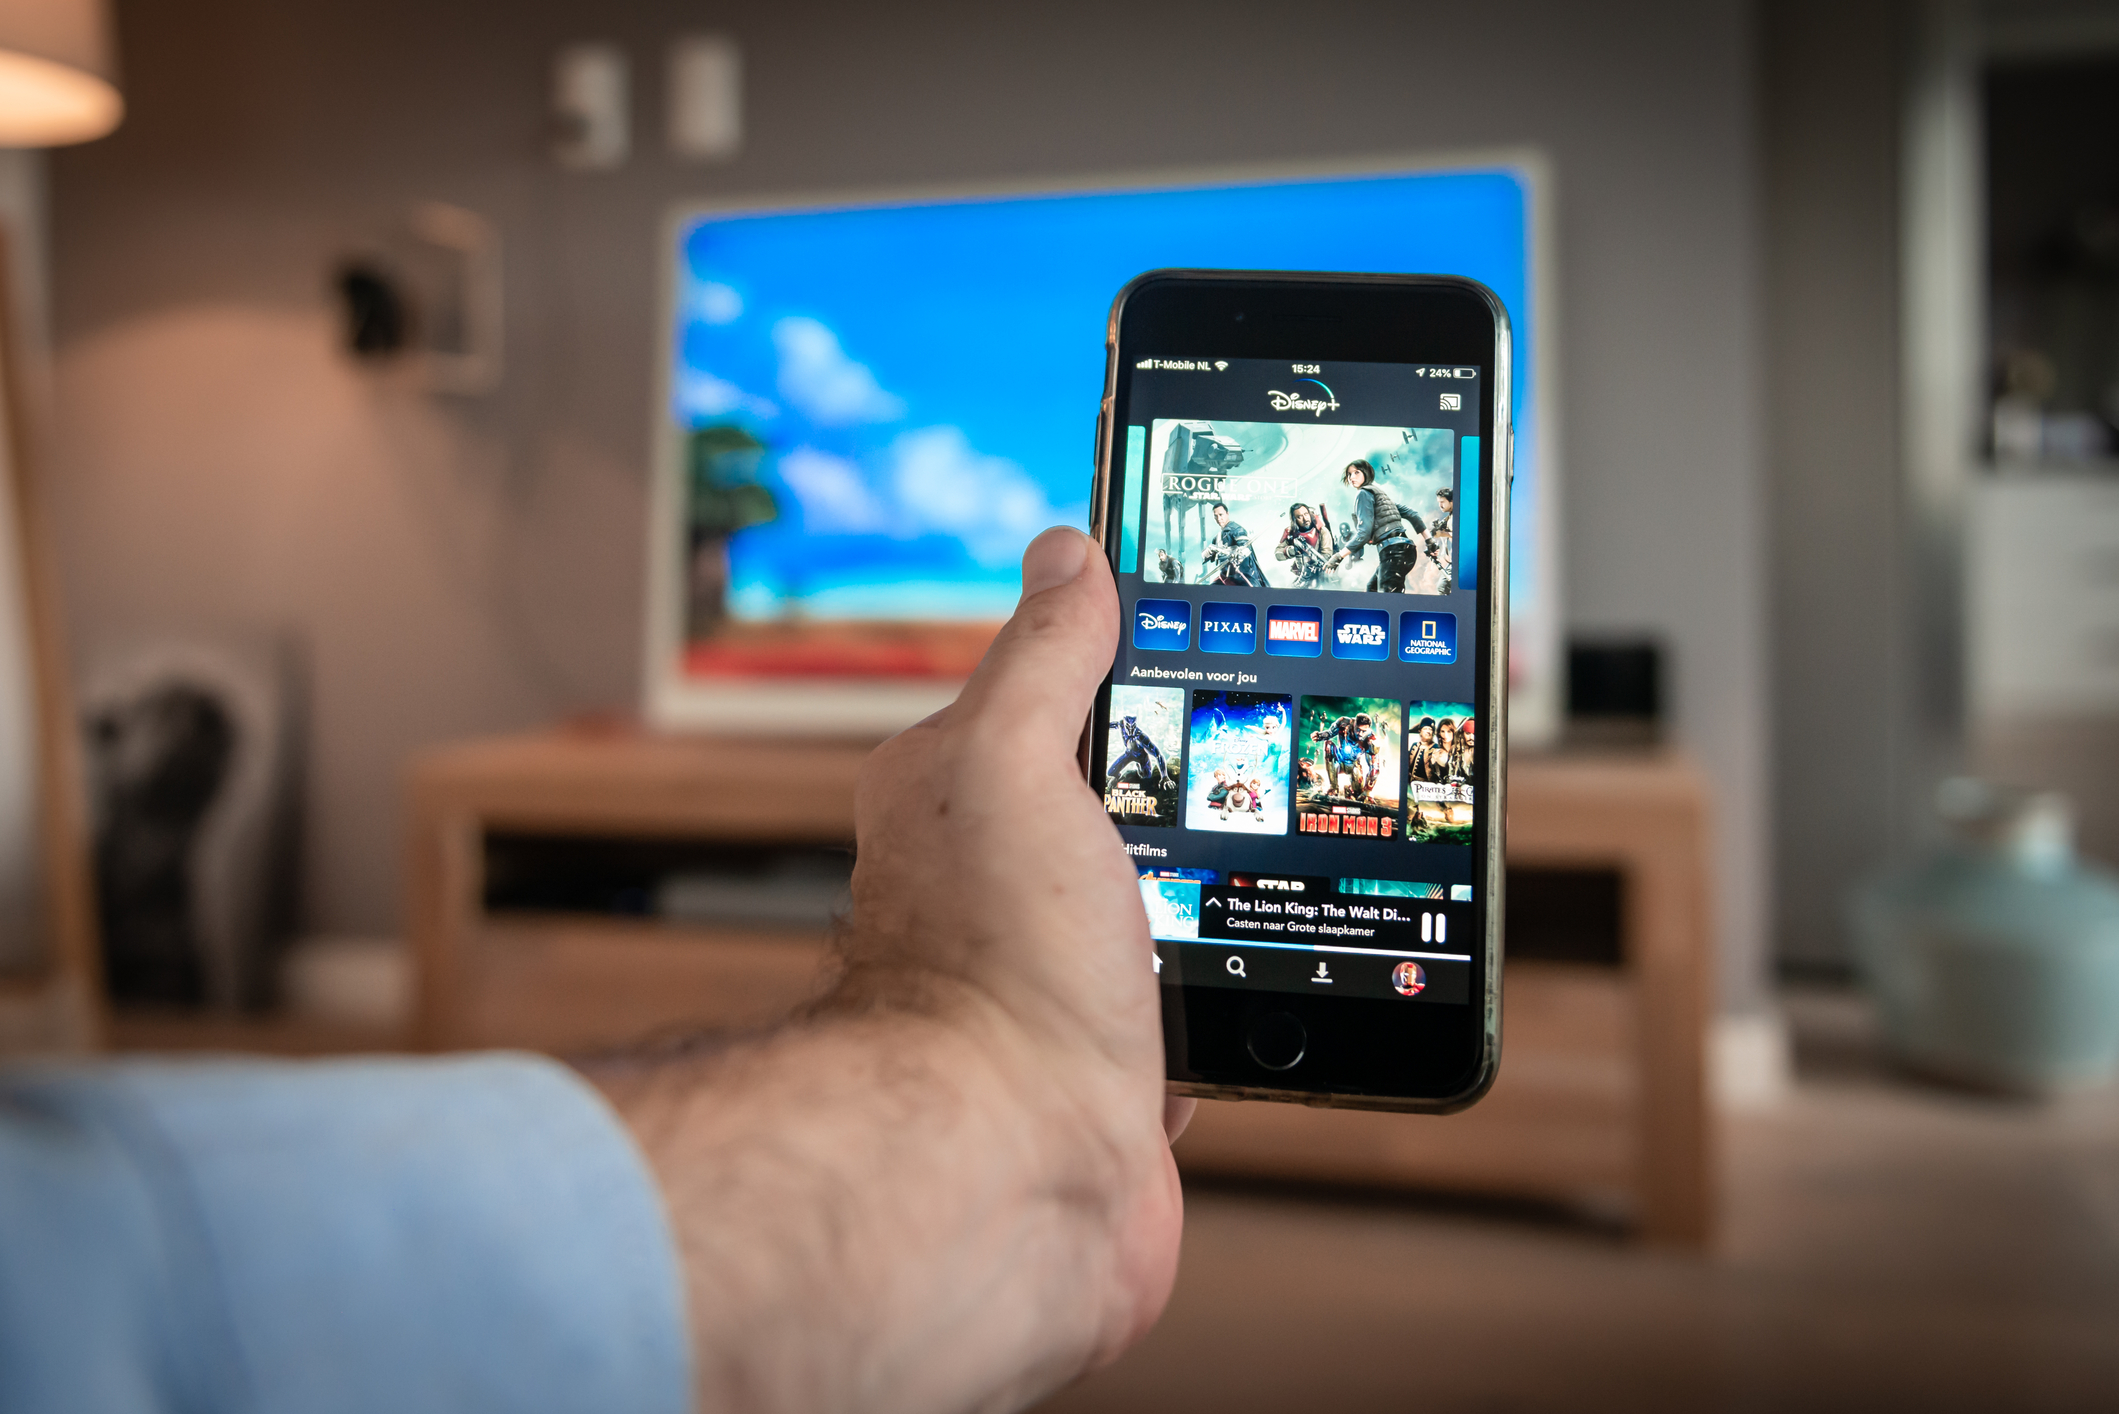 Connect Phone To Smart Tv Without Wifi, How To Screen Mirror Android Vizio Tv Without Wifi